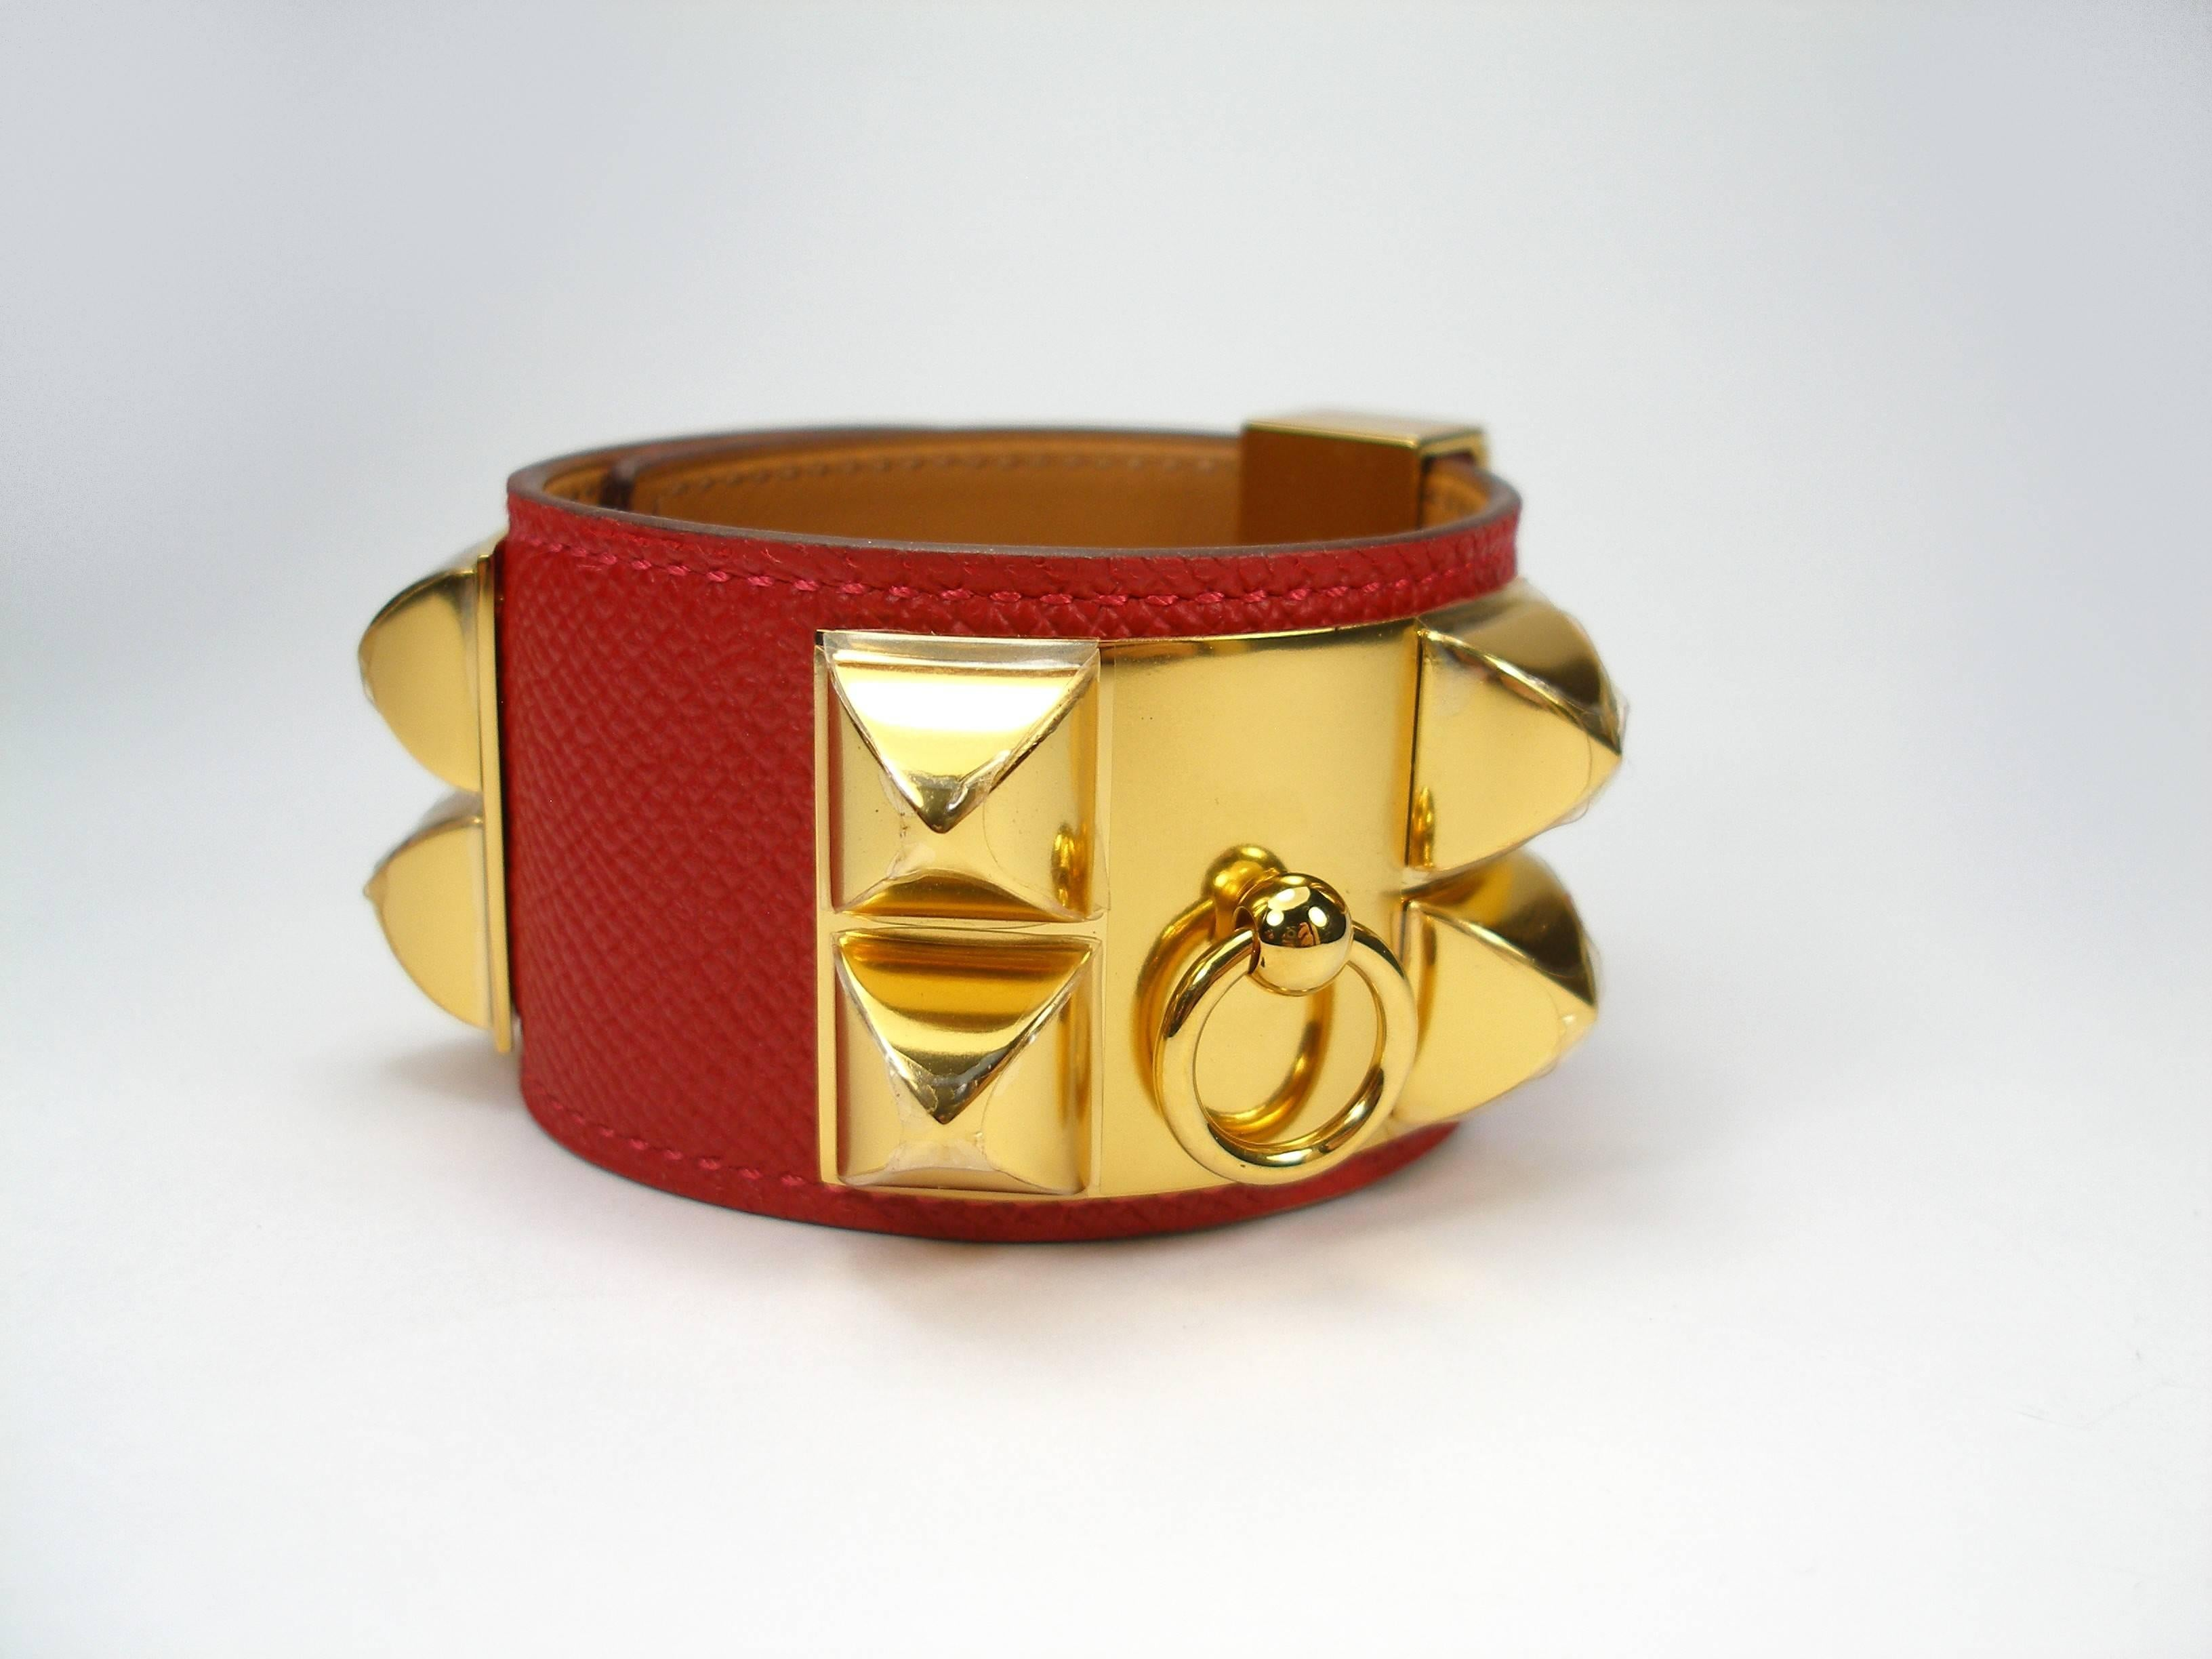 hermes bracelet c chien tadelakt fauve leather de small collier